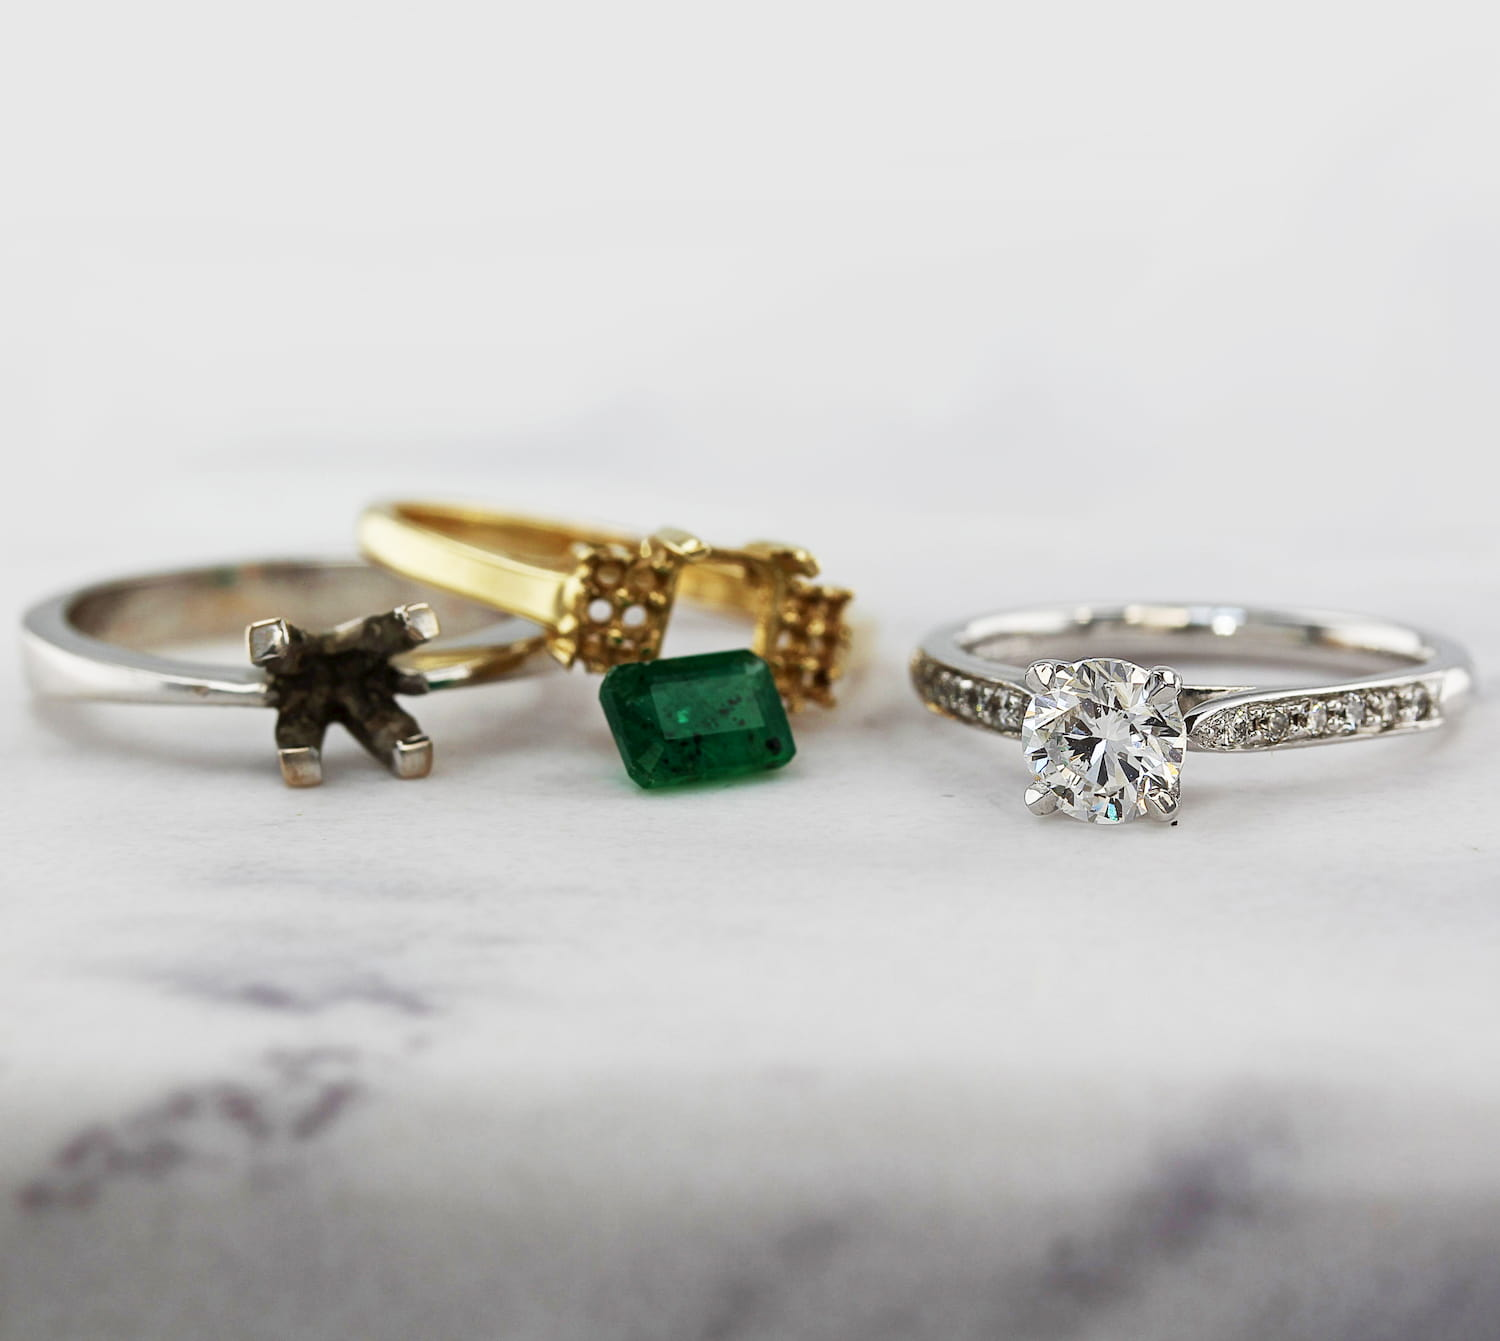 Redesigning and reviving old Jewellery